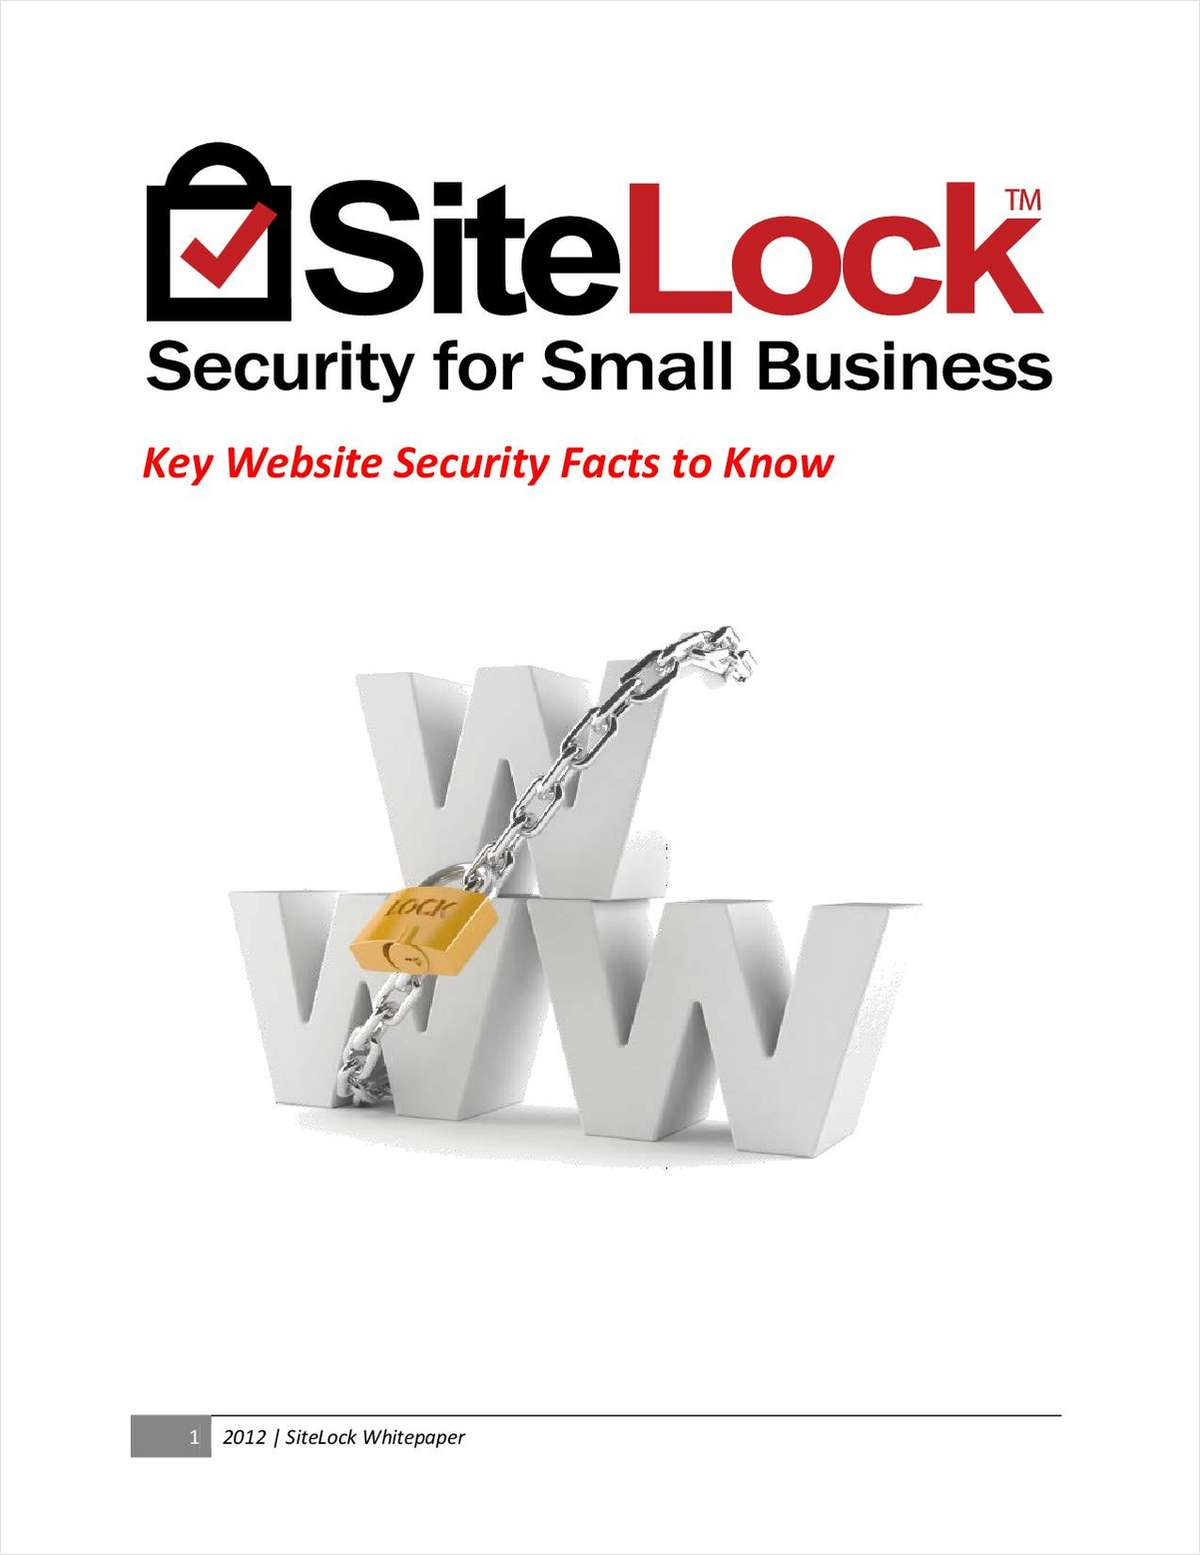 Key Website Security Facts to Know for Small Business